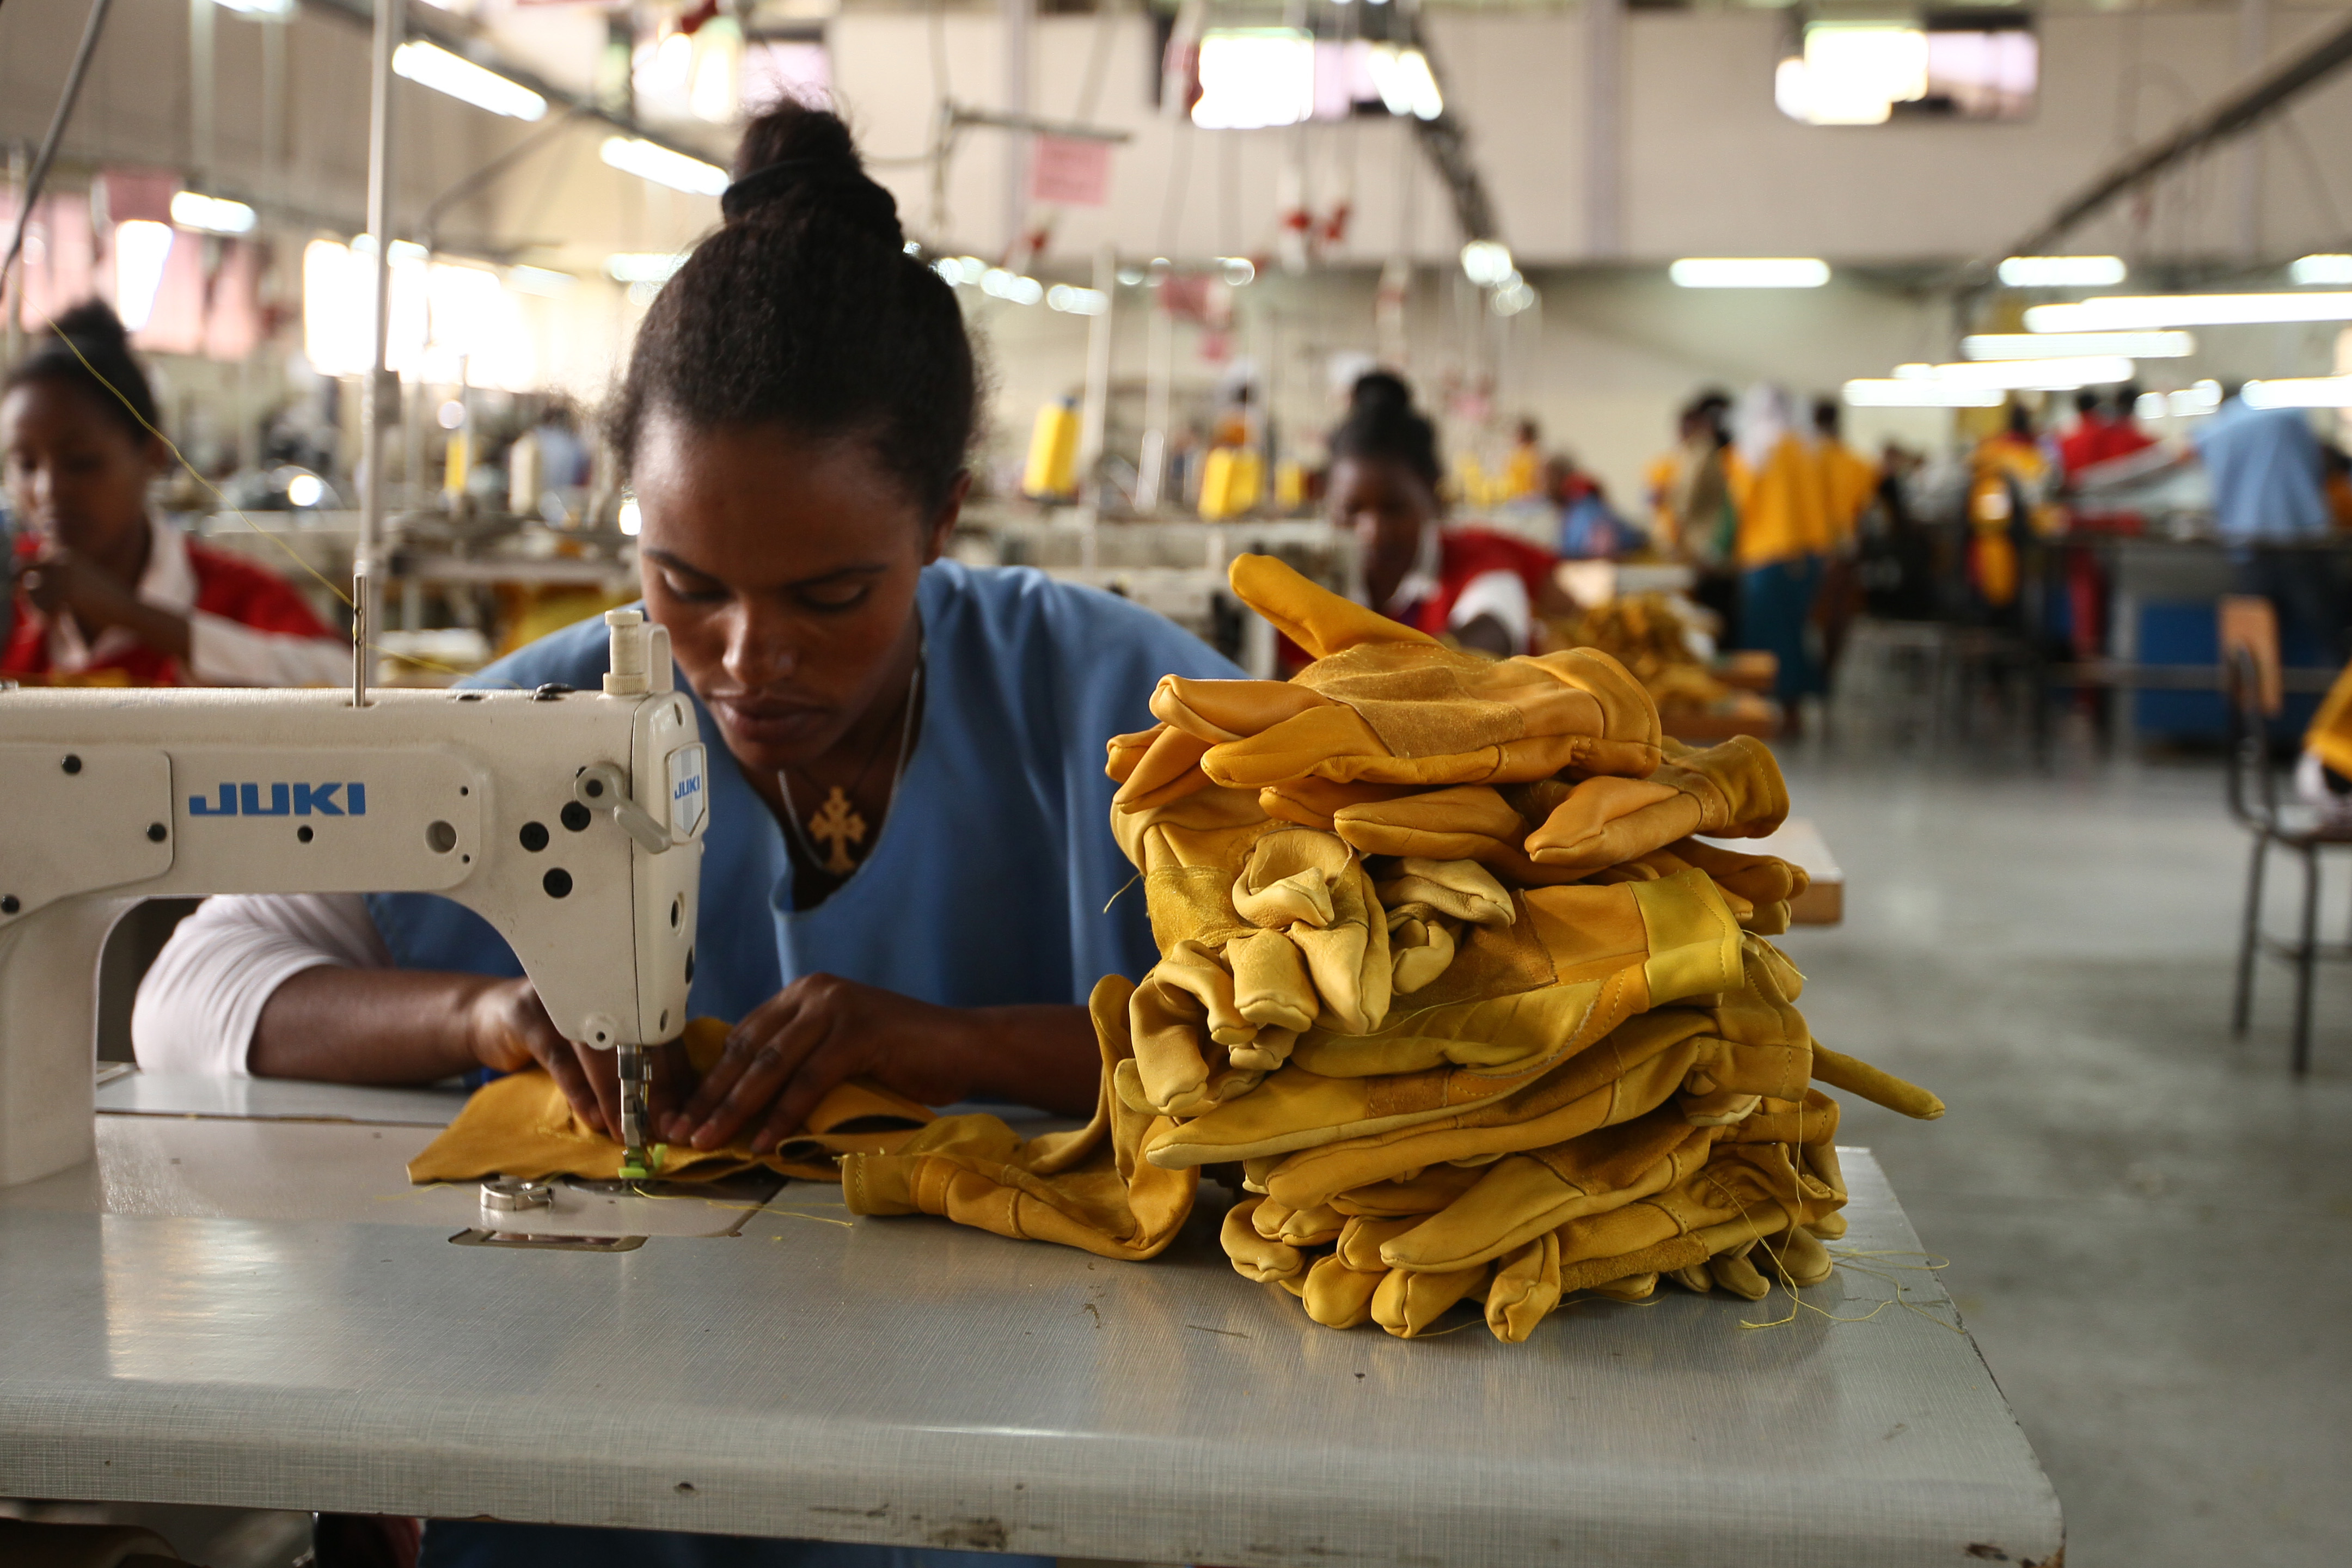 A woman stitches leather gloves at the Pittards world class leather manufacturing company in Ethiopia's capital Addis Ababa